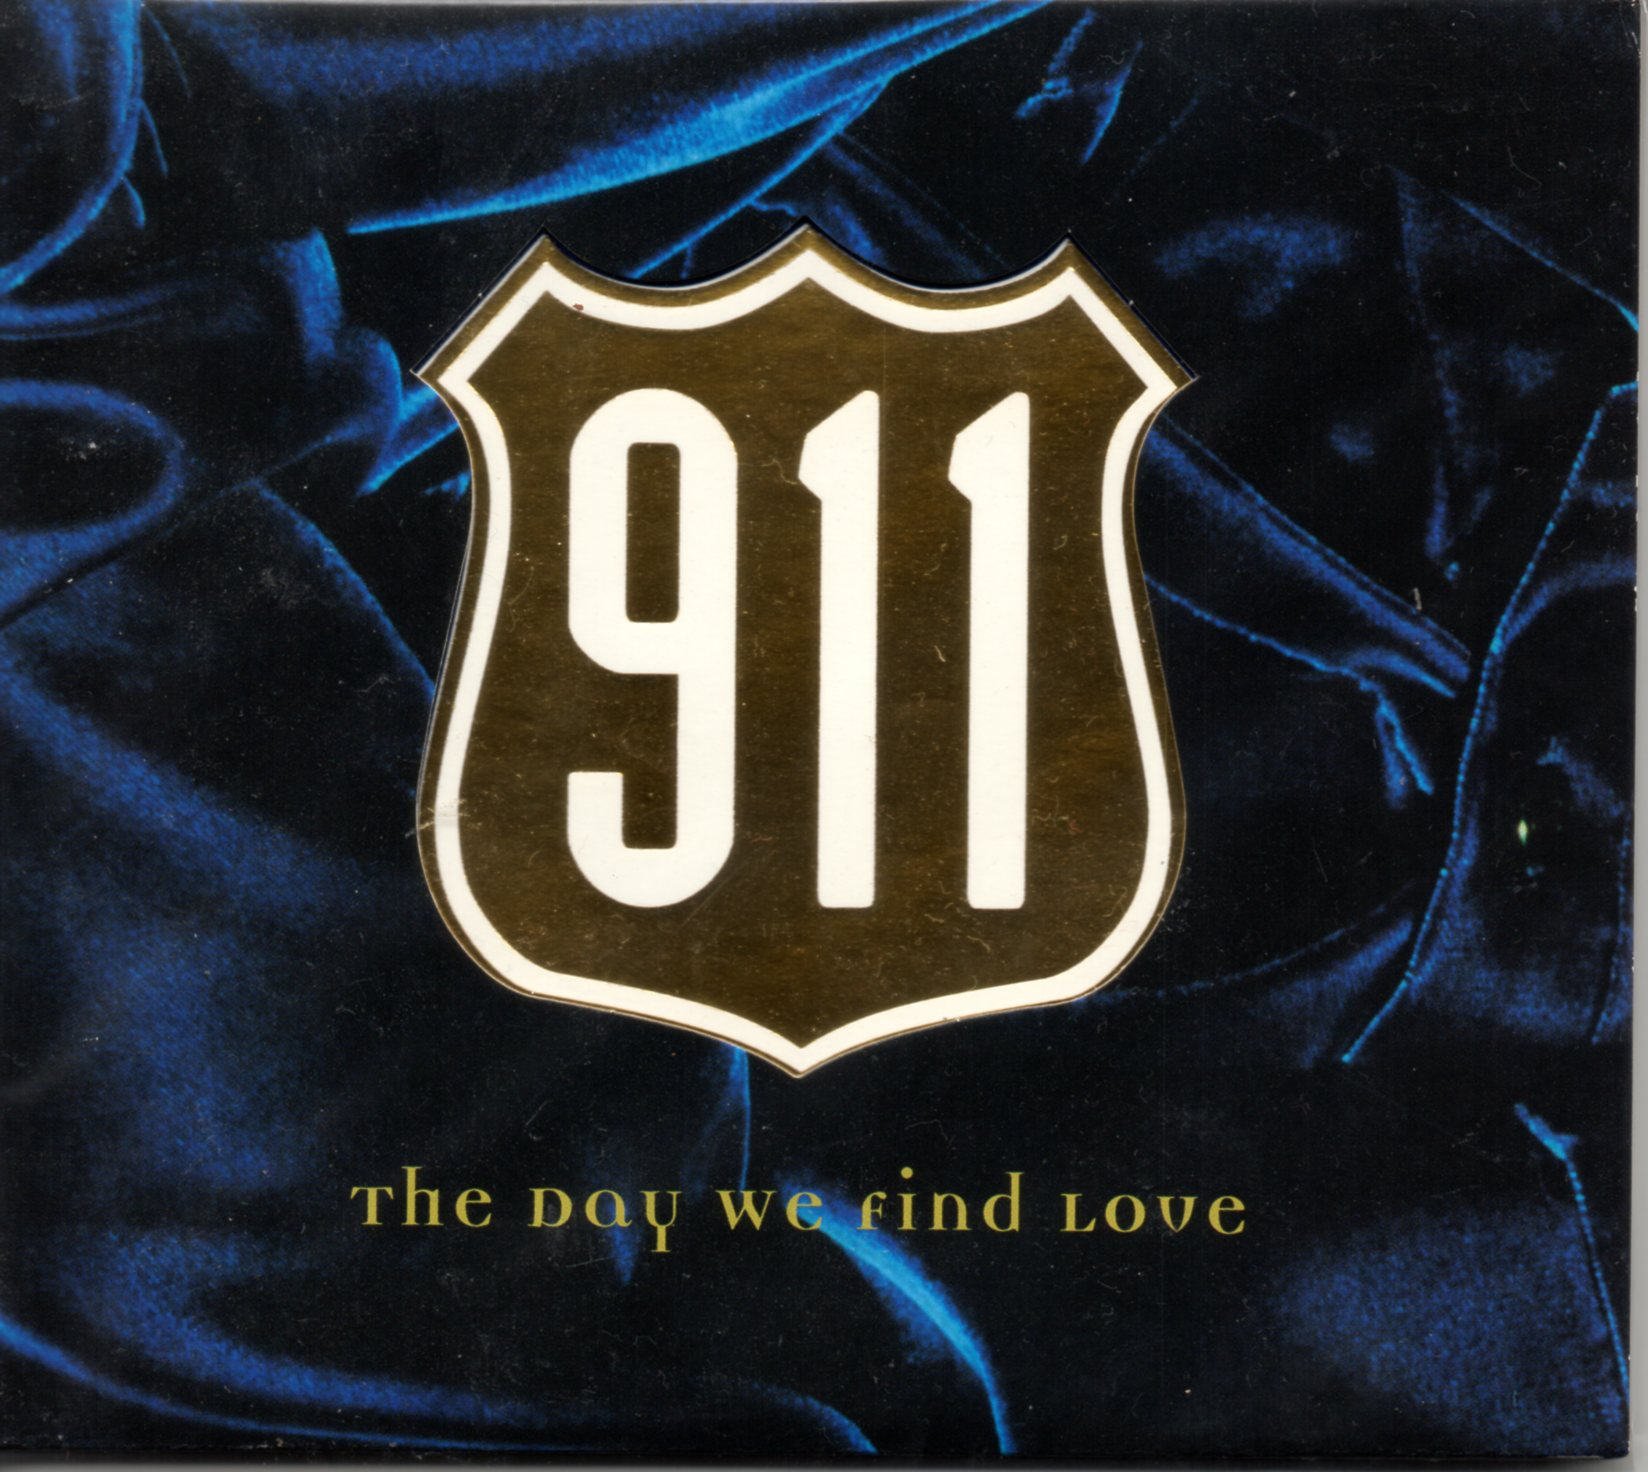 911 - The day we find love 3-track digipack - CD Maxi